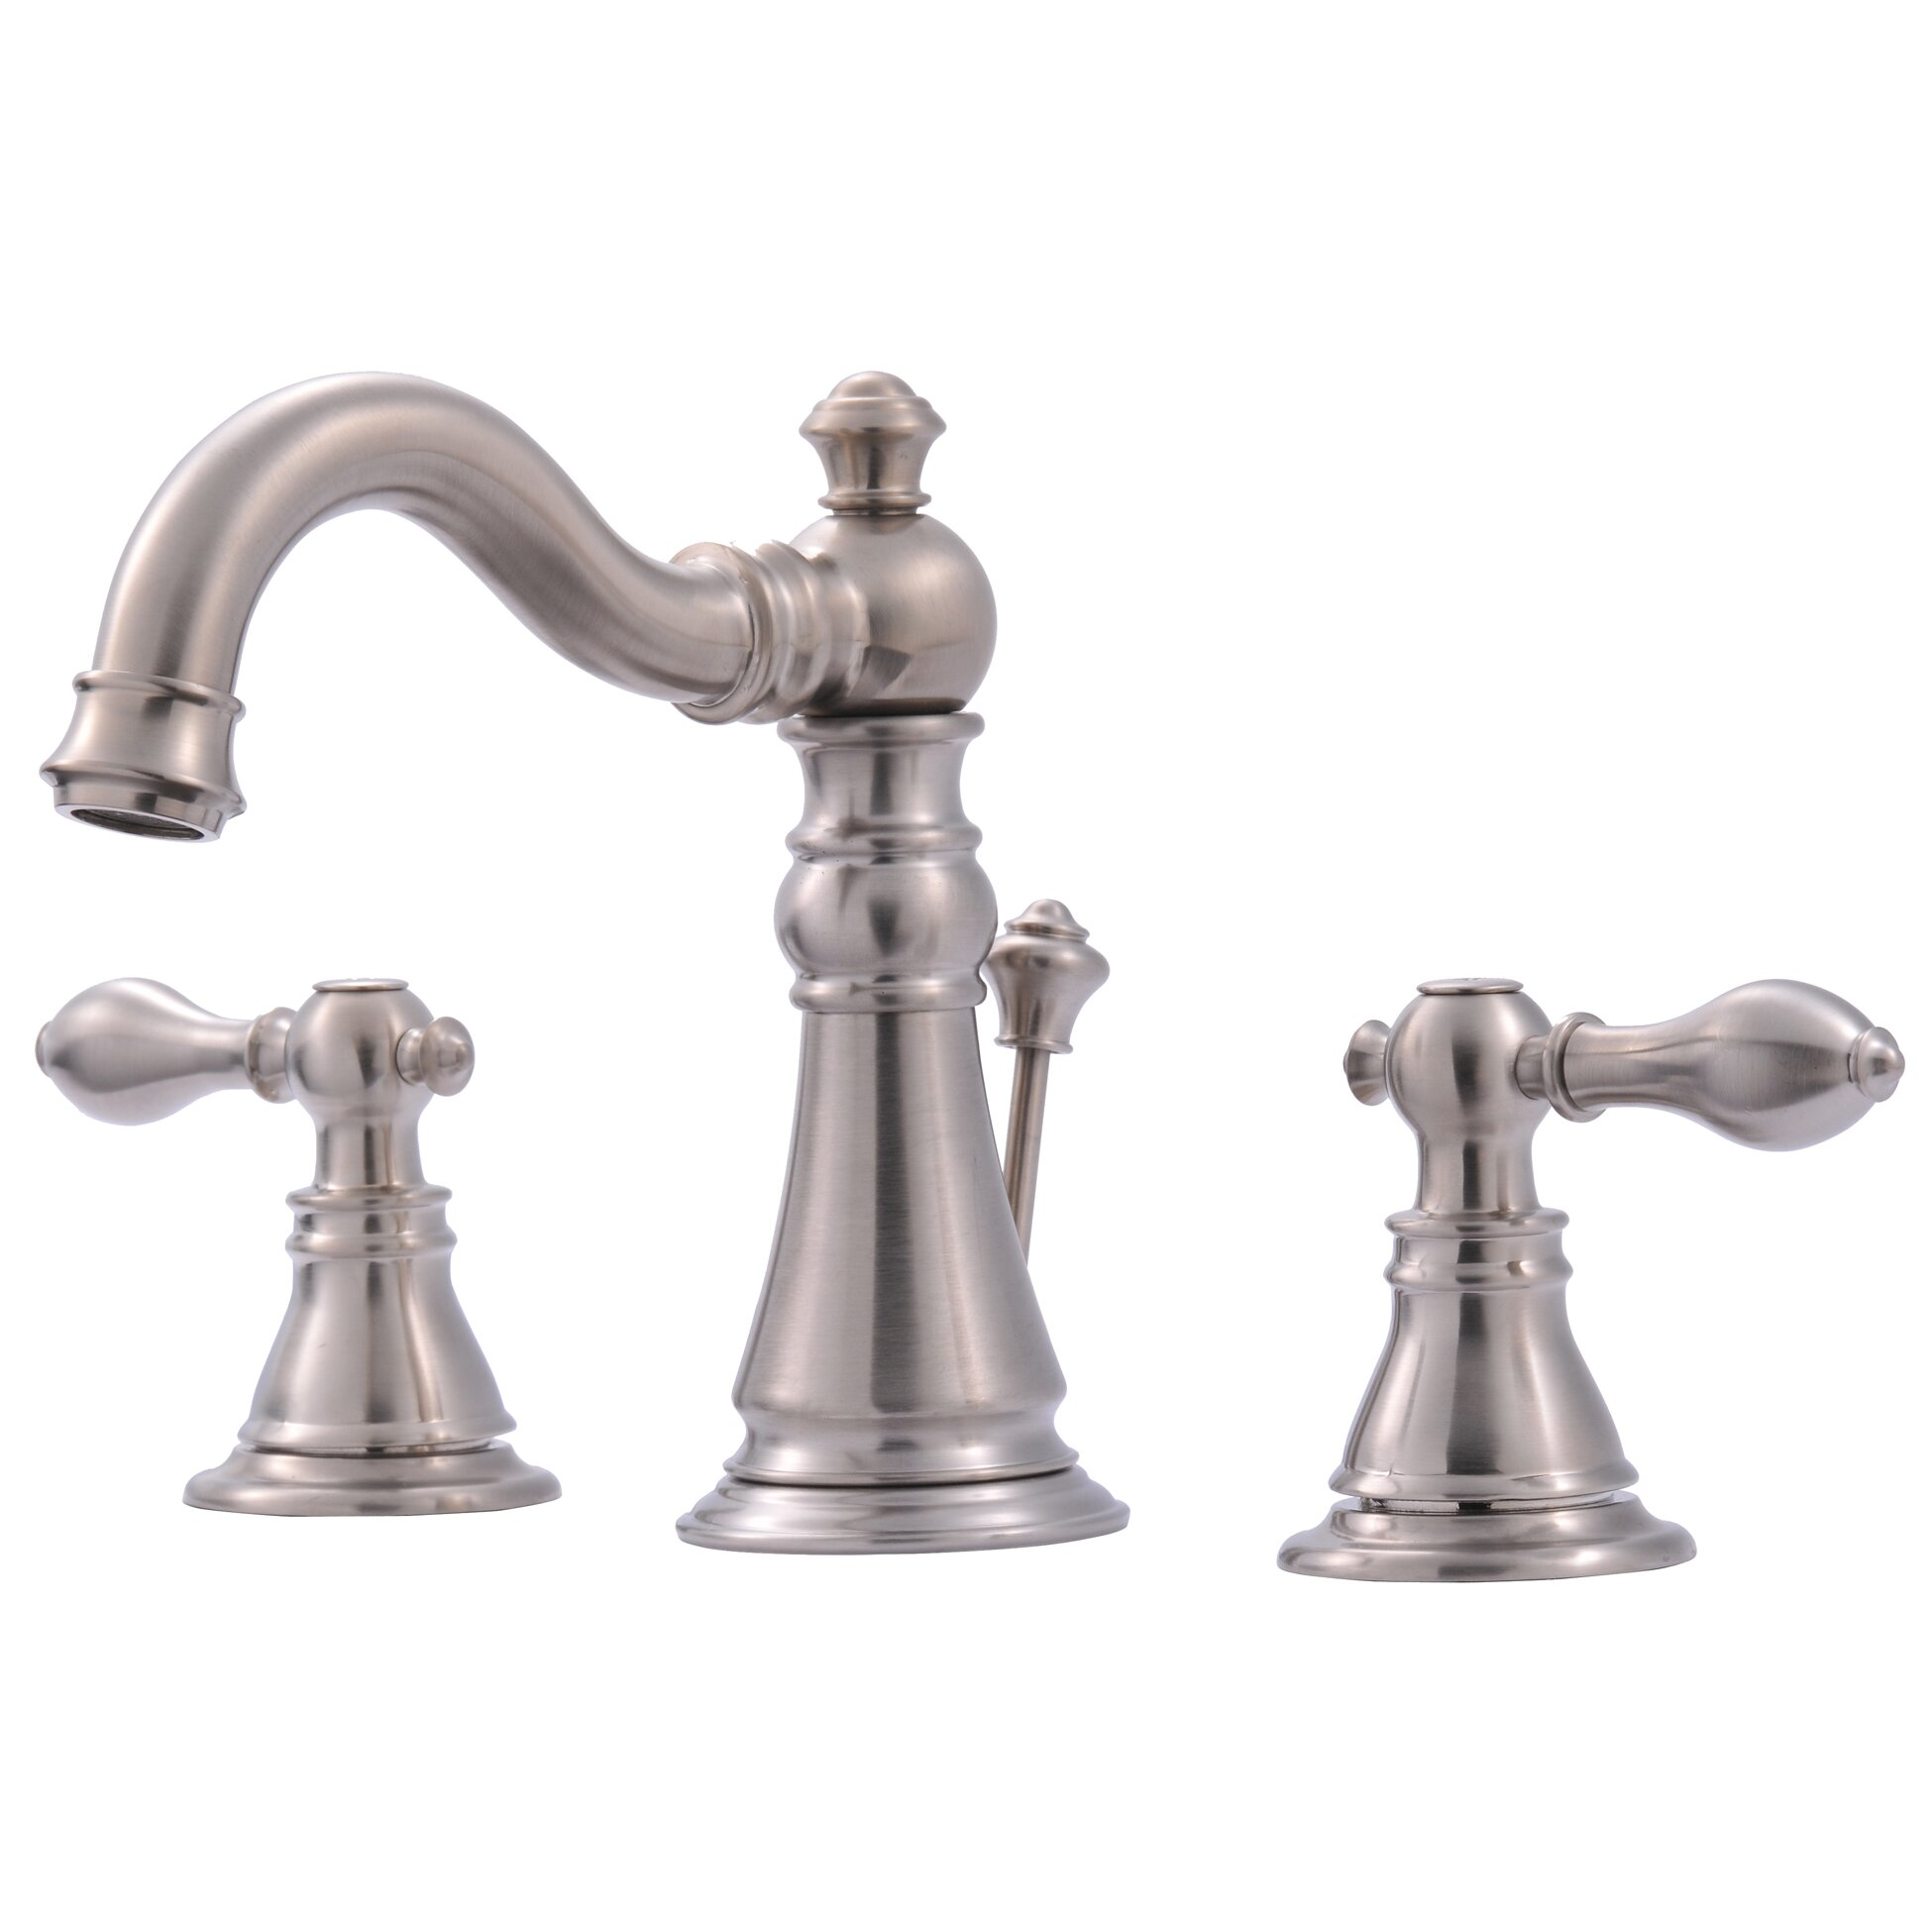 Ultra Faucets Widespread Bathroom Faucet With Double Handles Reviews Wayfair